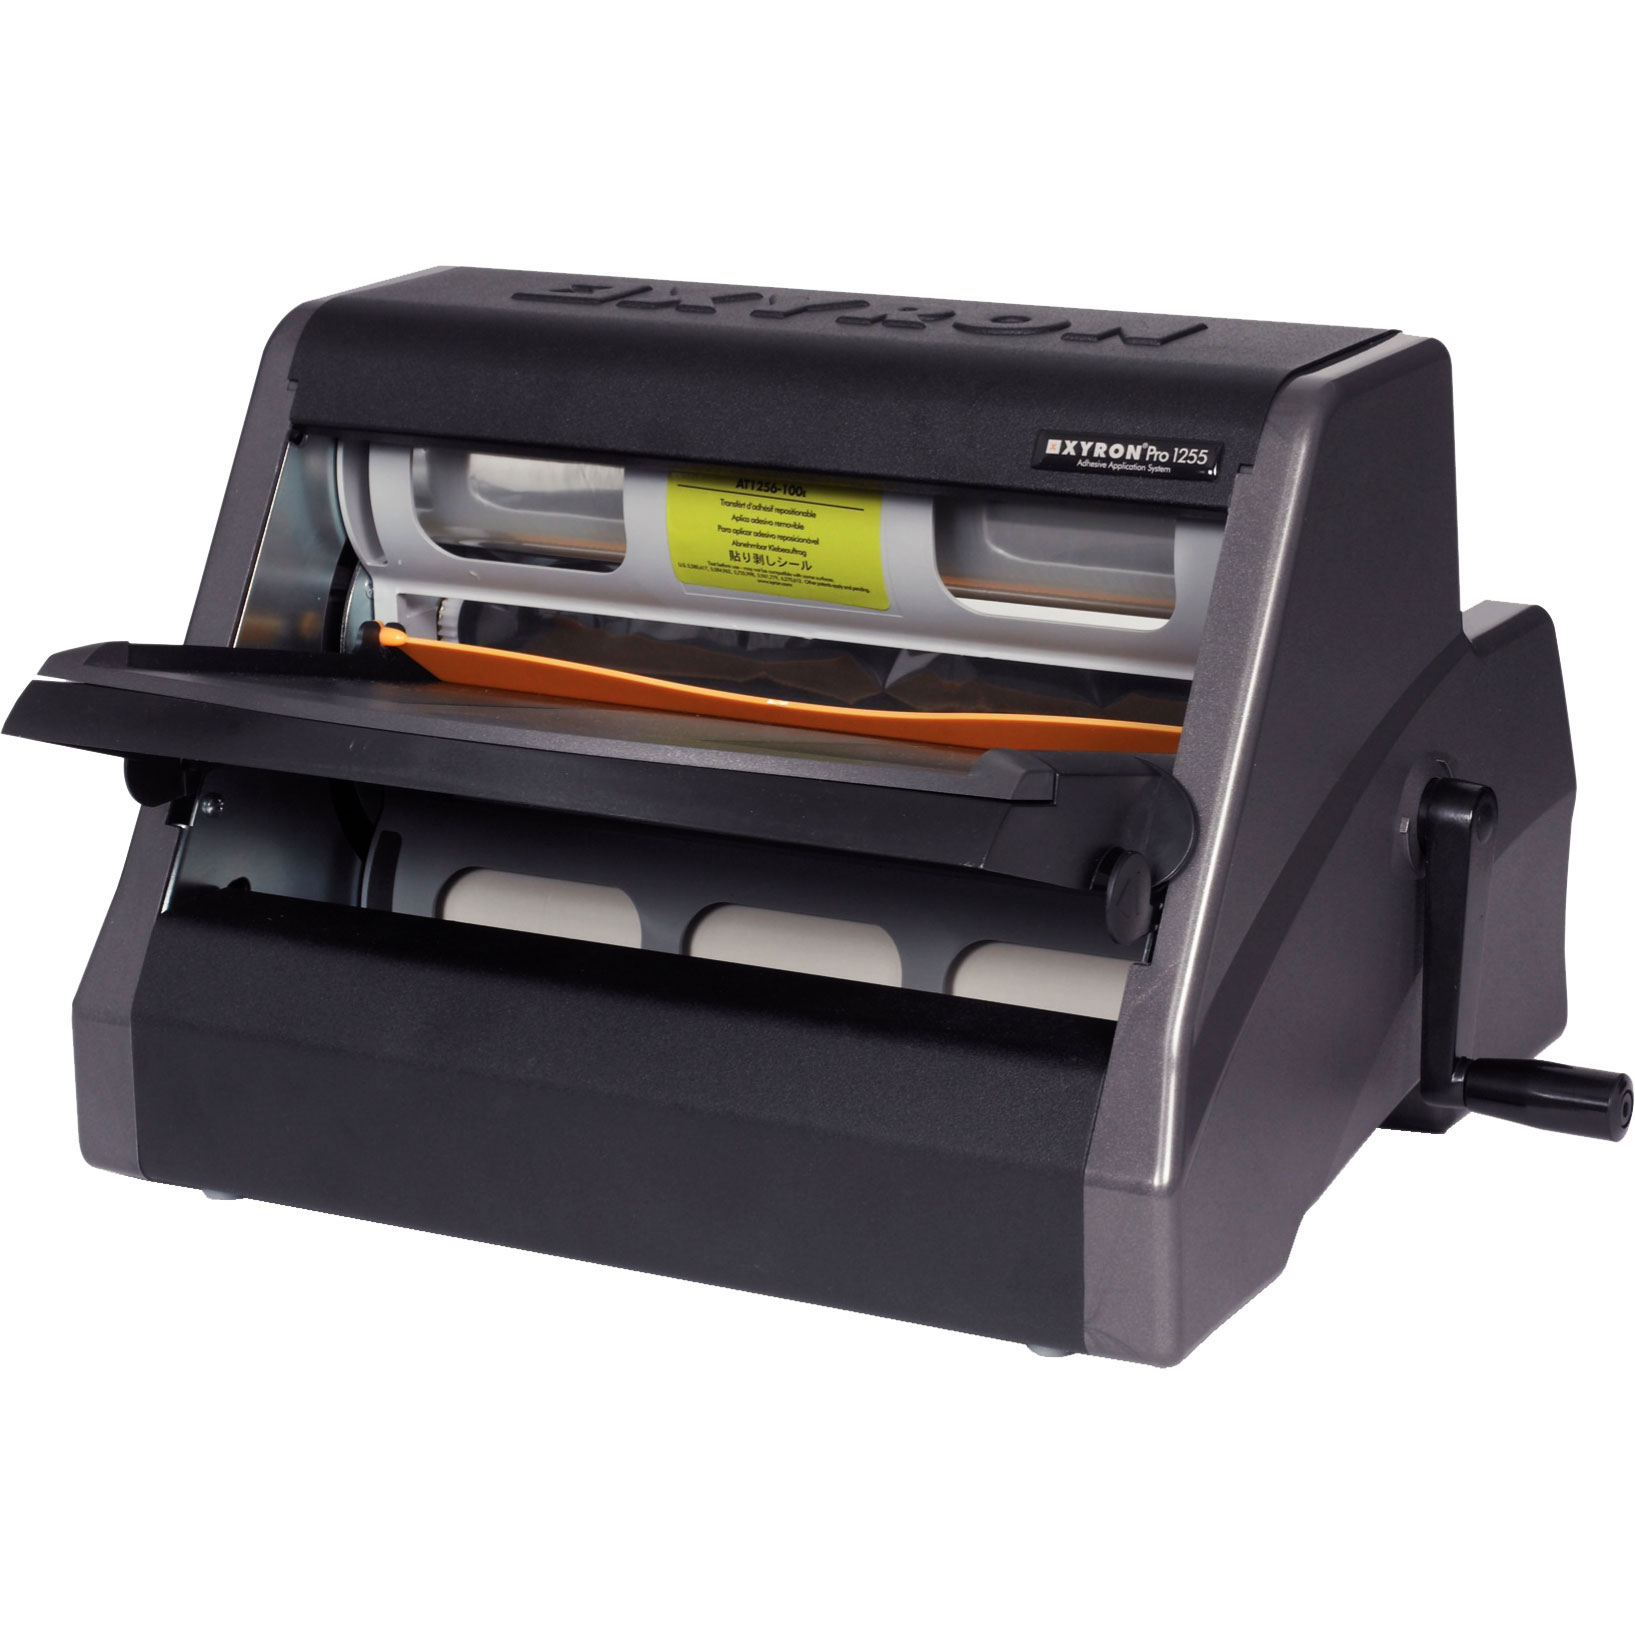 Cold Seal Desktop Laminators